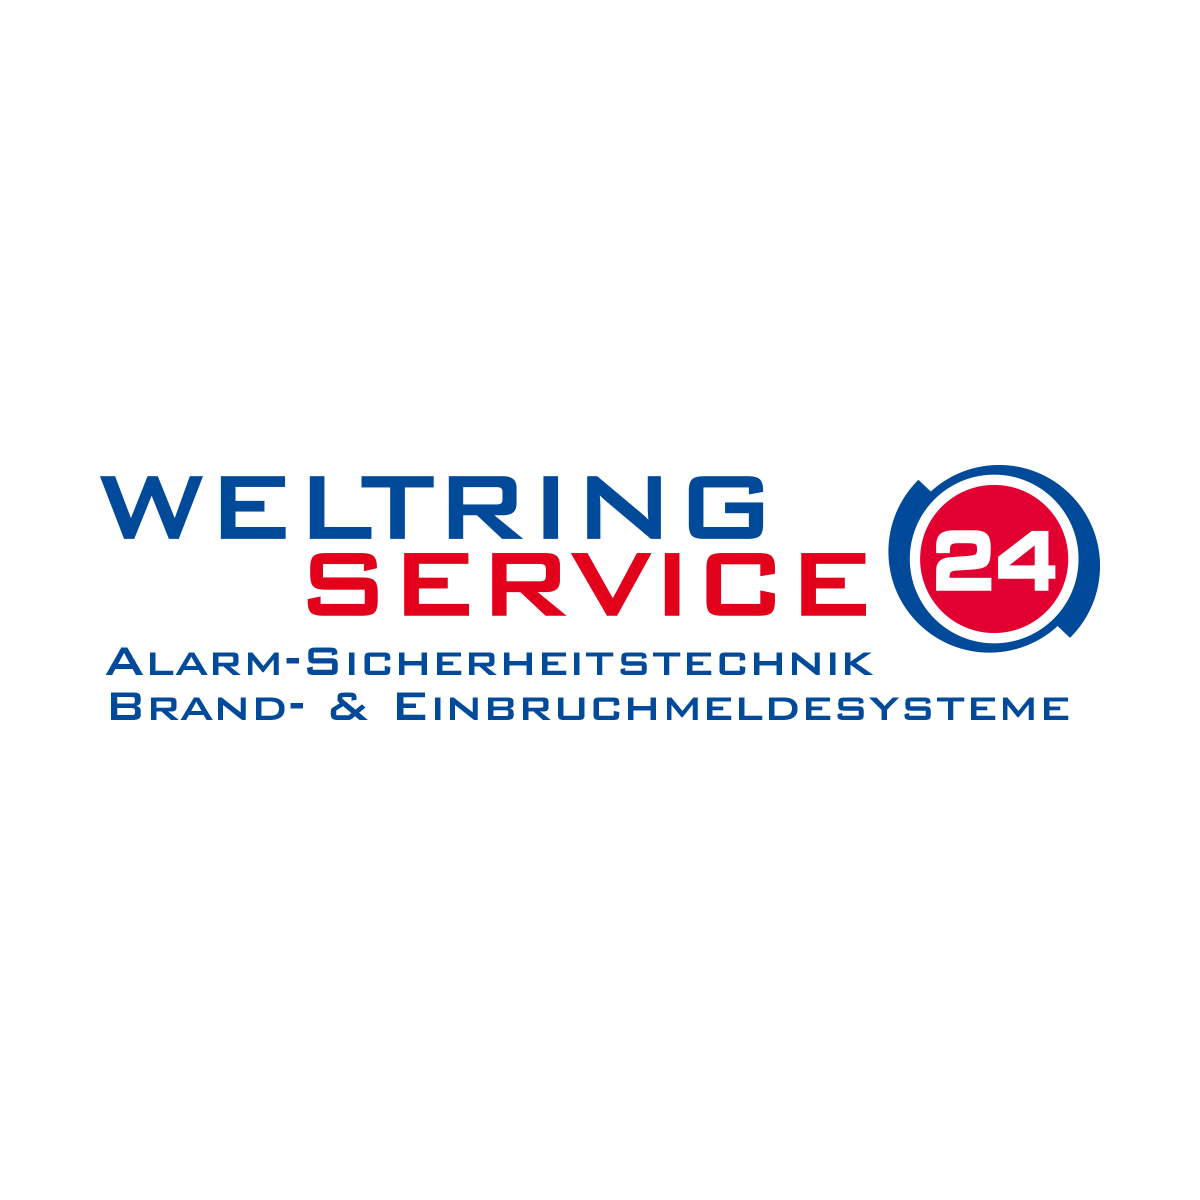 Weltring Service 24 GmbH & Co. KG